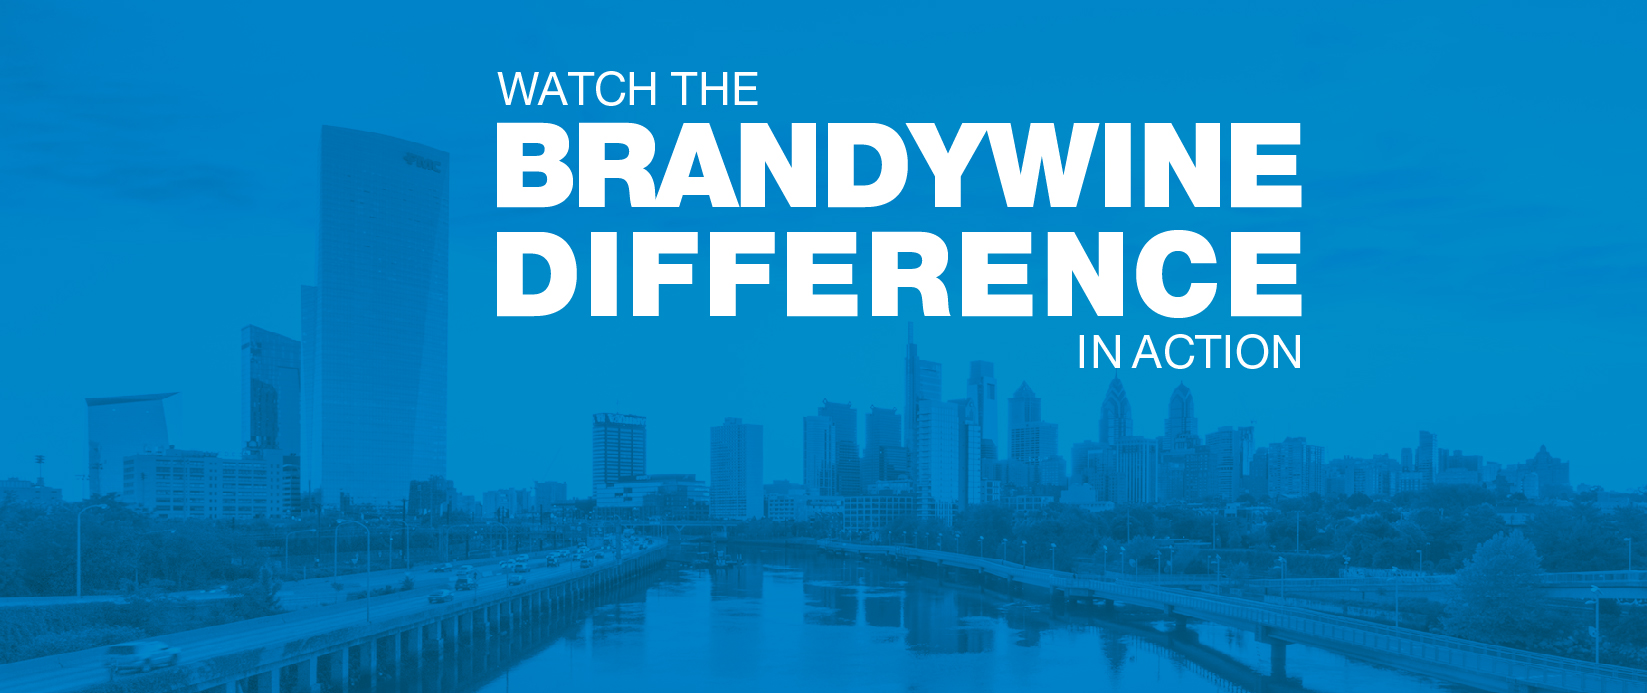 Brandywine Difference in Action